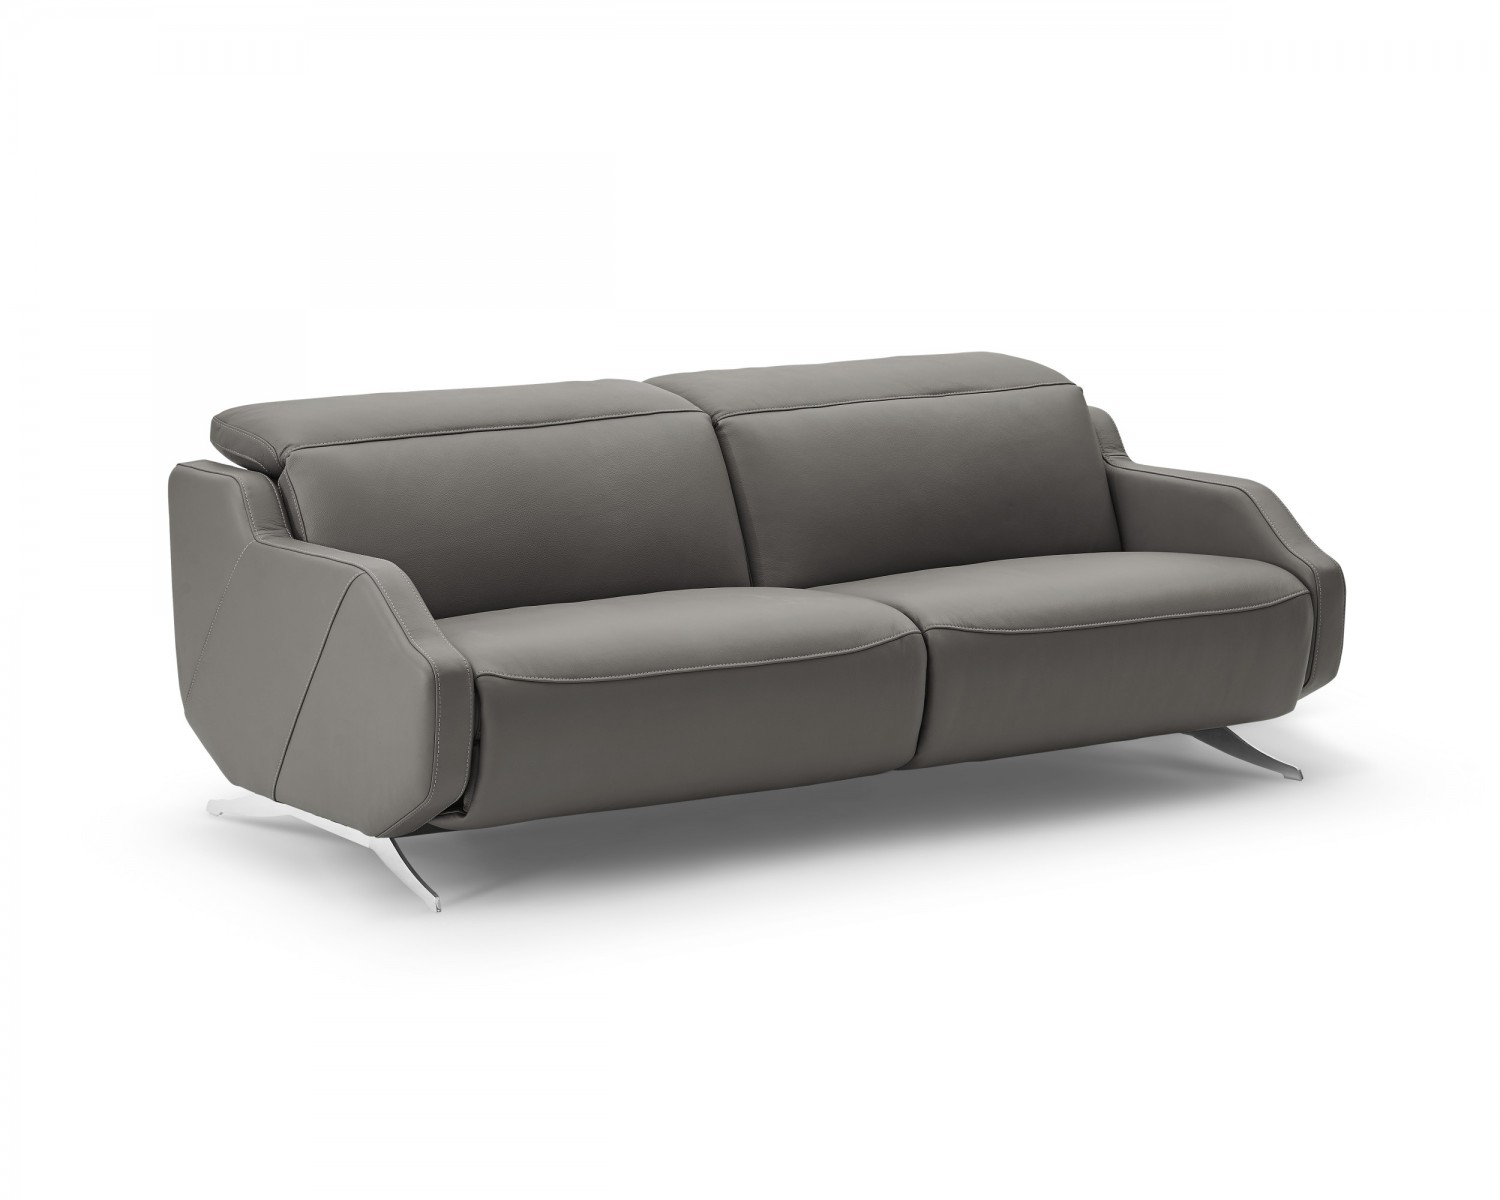 Antonio Modern Recliner Loveseat | Creative Furniture, $4,075.00, Creative  Furniture, Gray